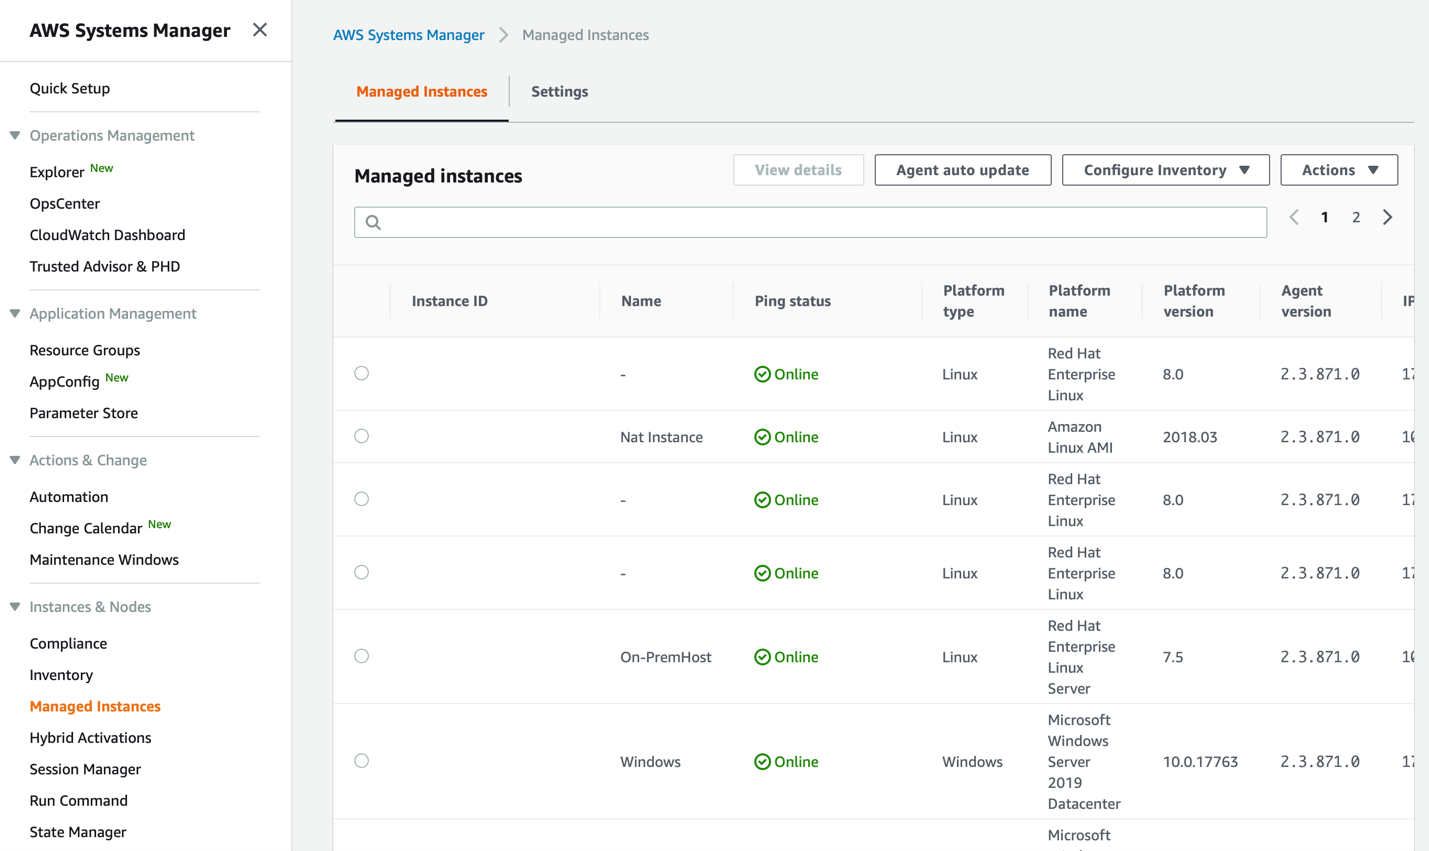 AWS Systems Manager console showing Managed Instances panel under Instances & Nodes. Managed instances includes on-premises hosts and EC2 instances.